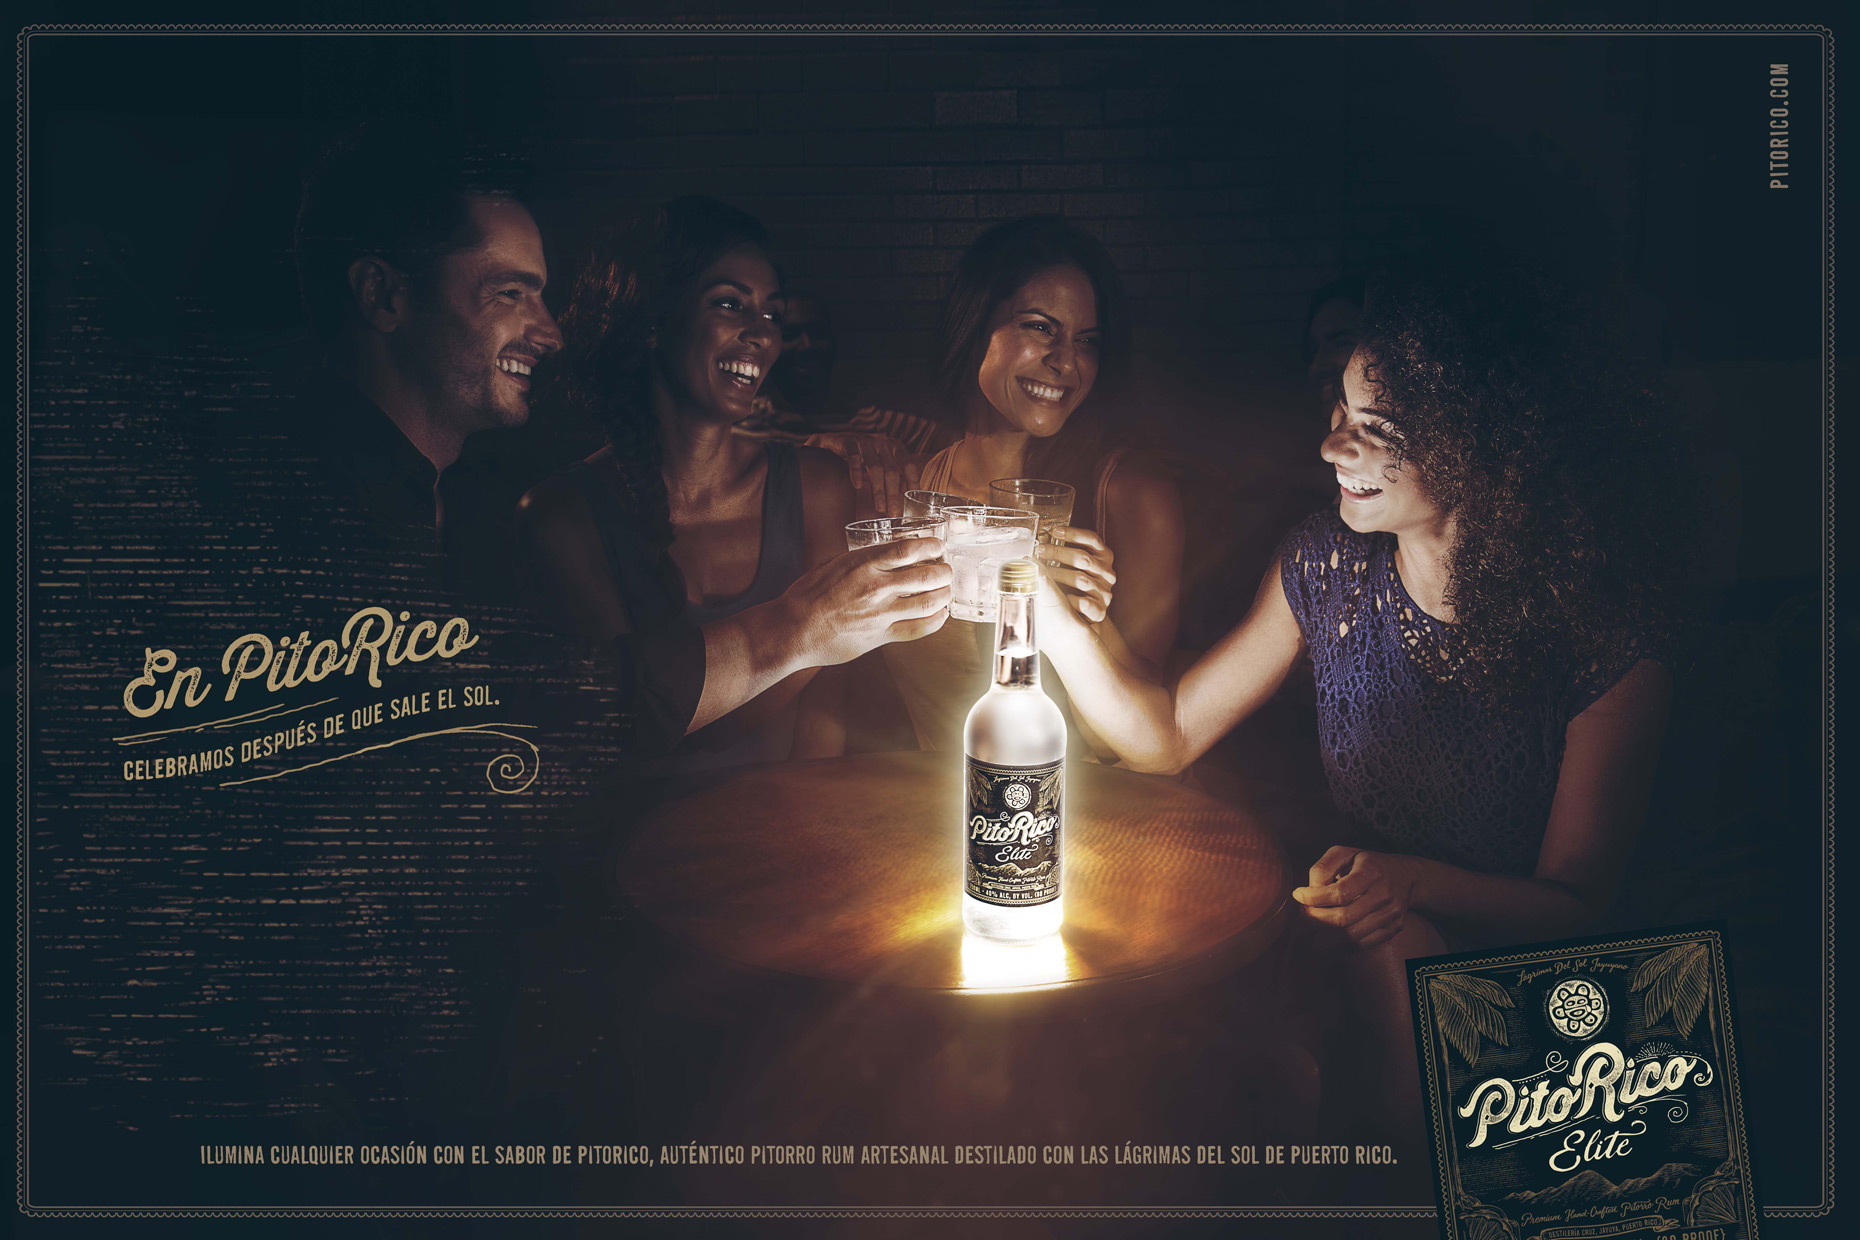 Advertising campaign | Pito Rico | Miami Advertising photographer : Jeffery Salter